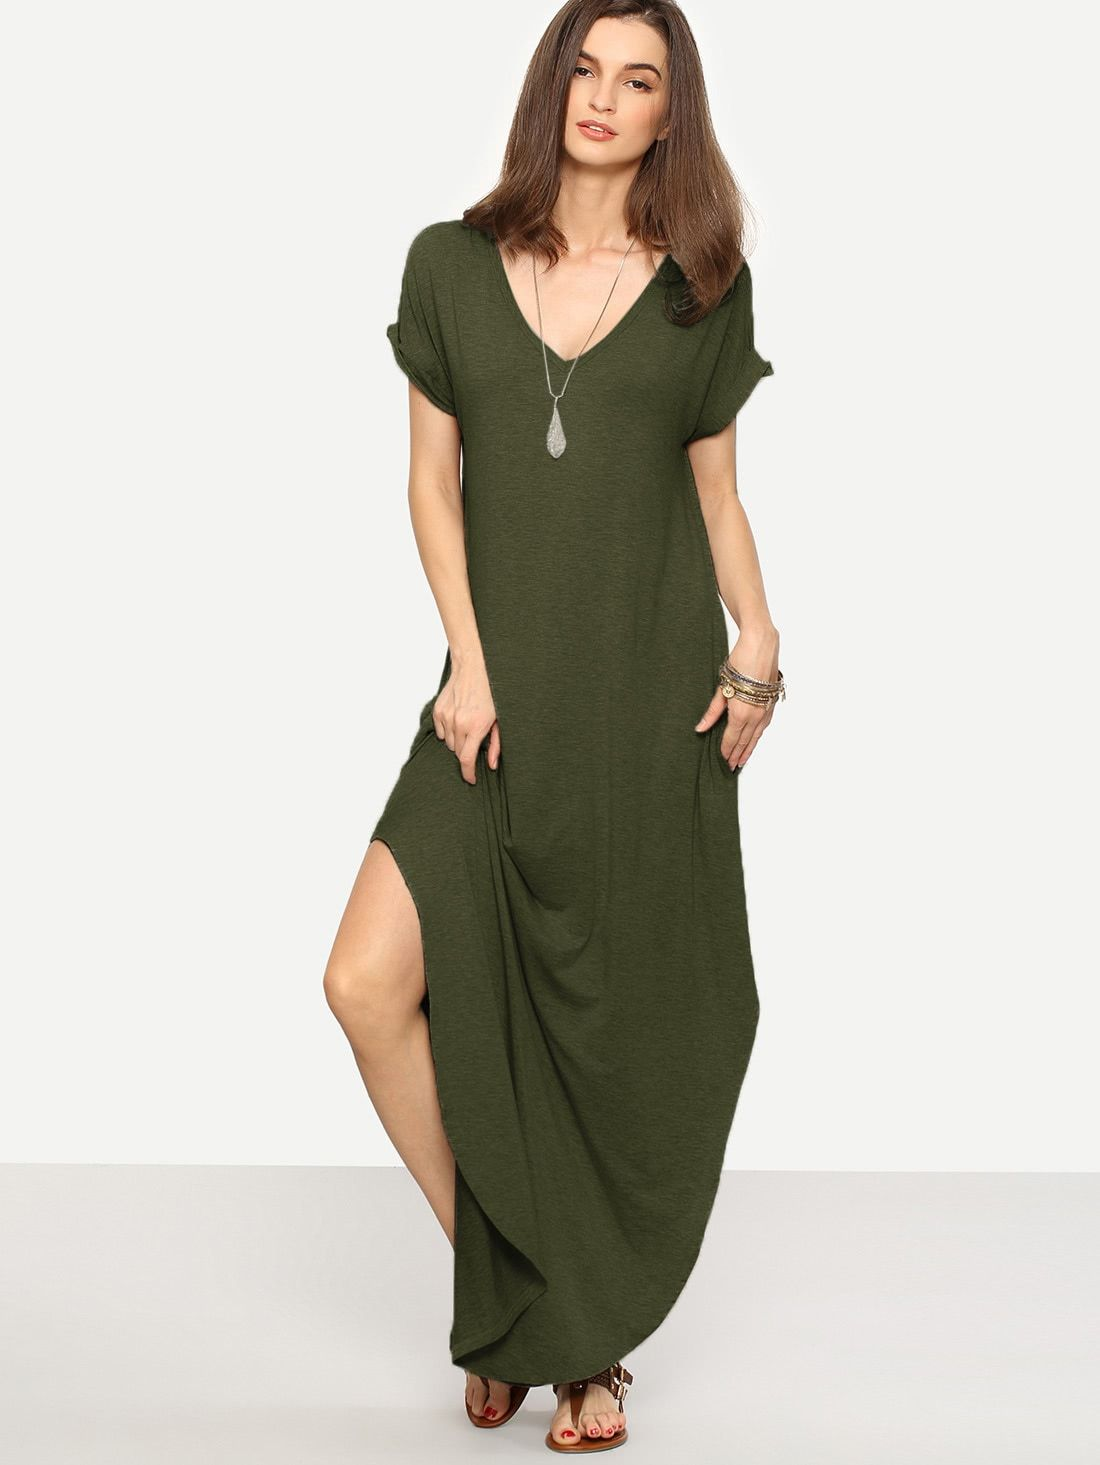 aa98e86335b Casual Tunic Plain Shift Slit V Neck Short Sleeve Roll Up Sleeve Natural  Army Green Maxi